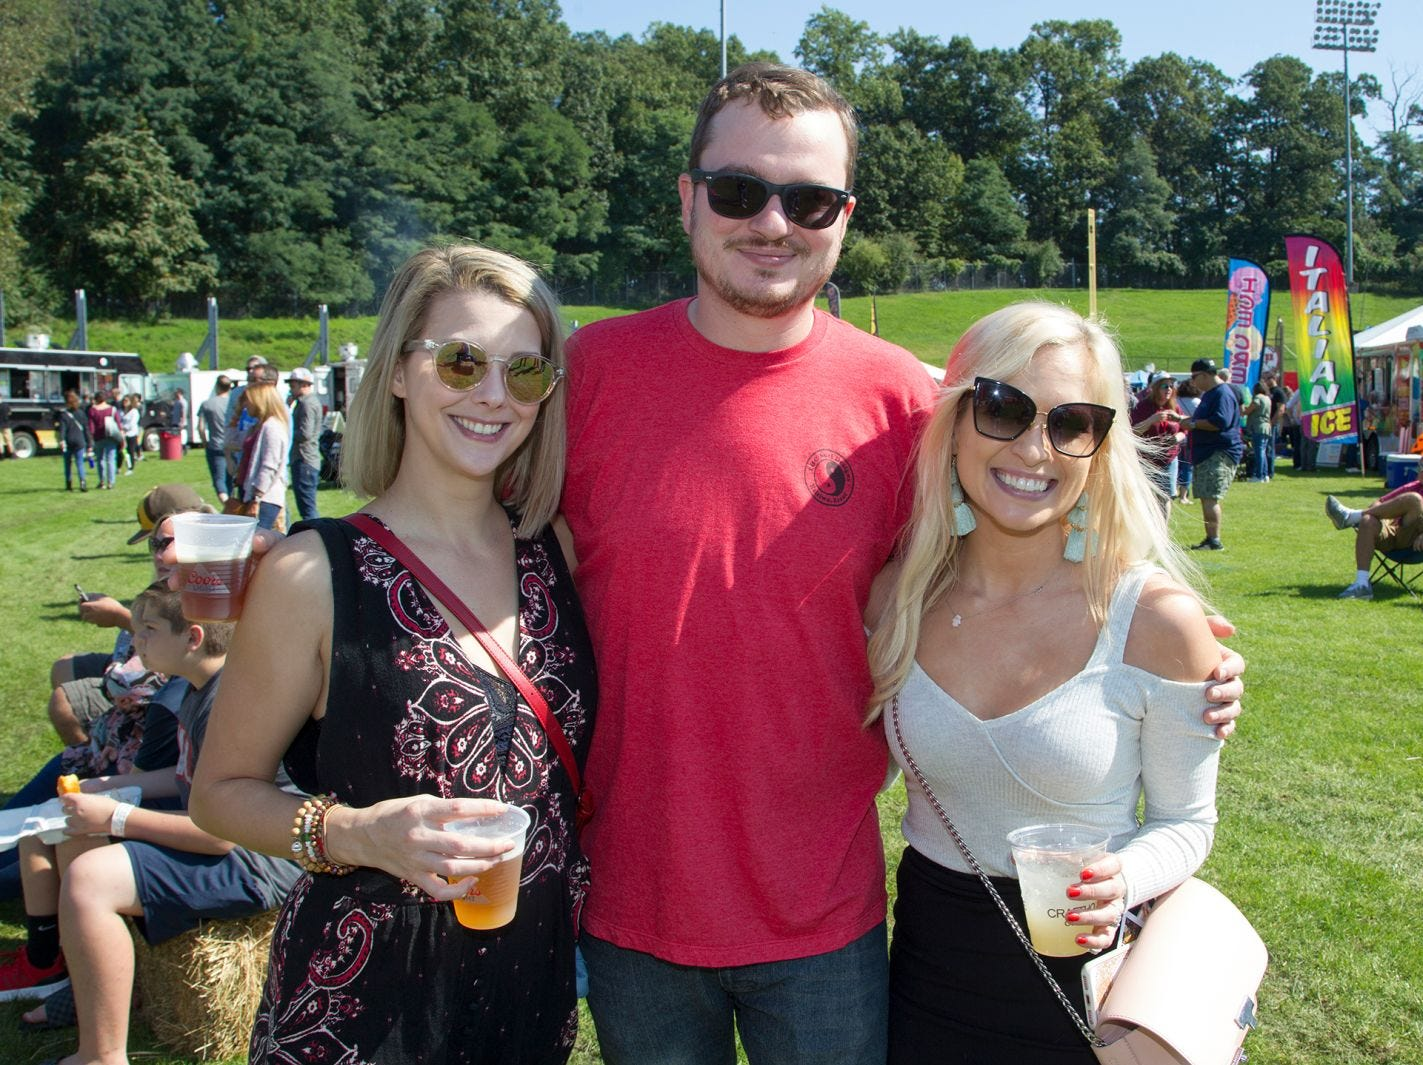 Rachel, Colin, Leslie. The second annual Food Truck & Craft Beer Festival at Yogi Berra Stadium in Little Falls. 09/29/2018